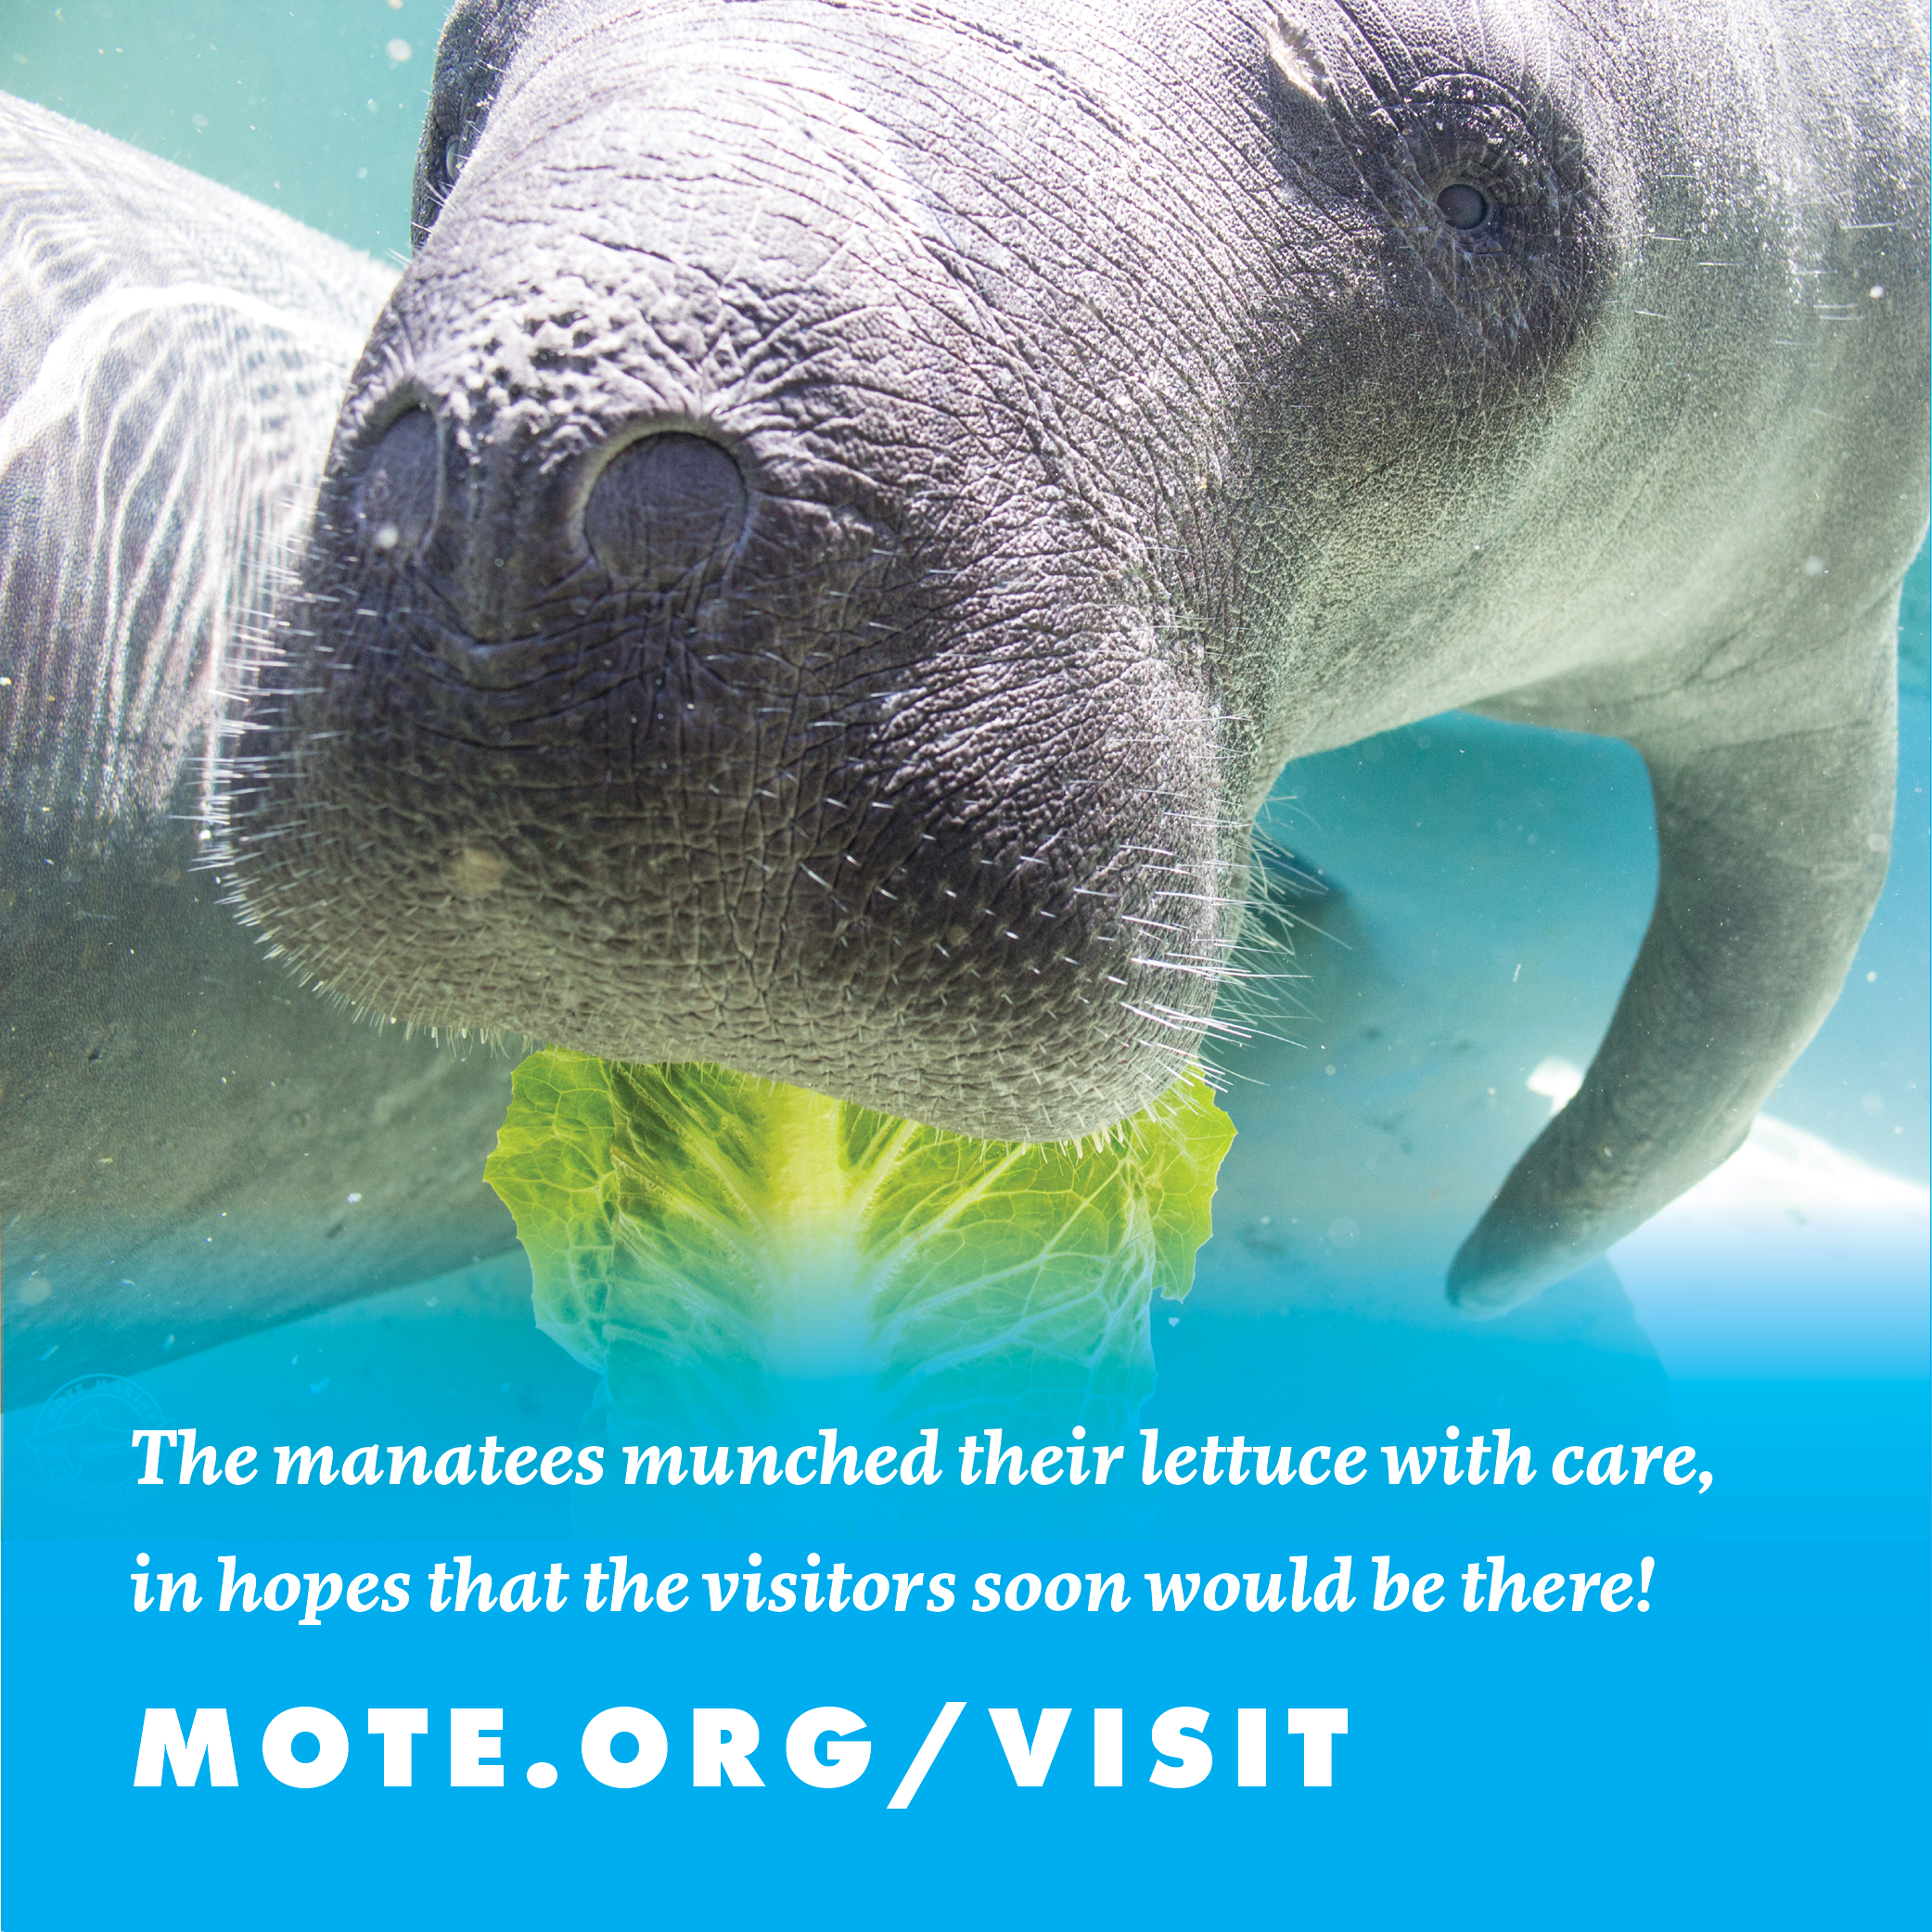 Picture of a manatee at Mote with the text overlaid: